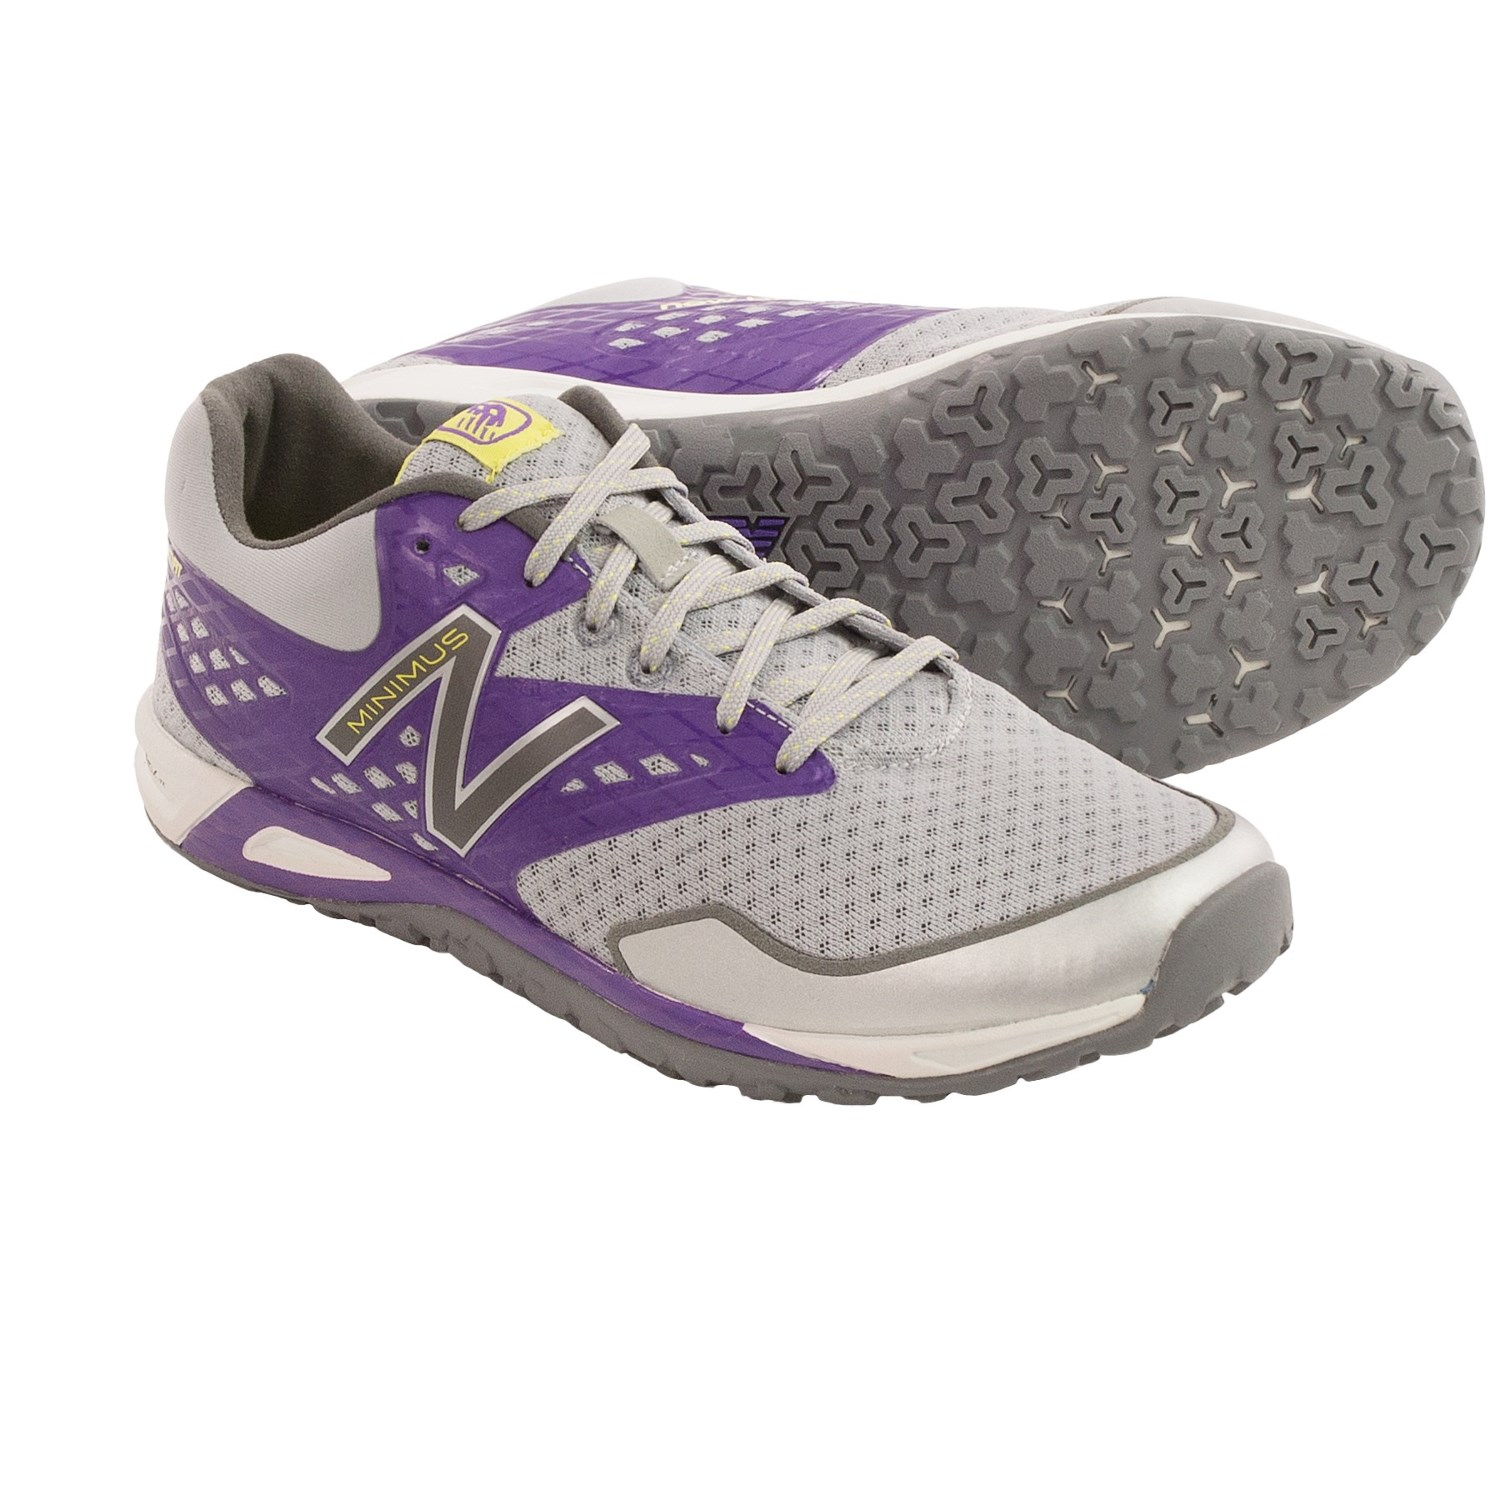 Asolo Womens Shoes Sizing